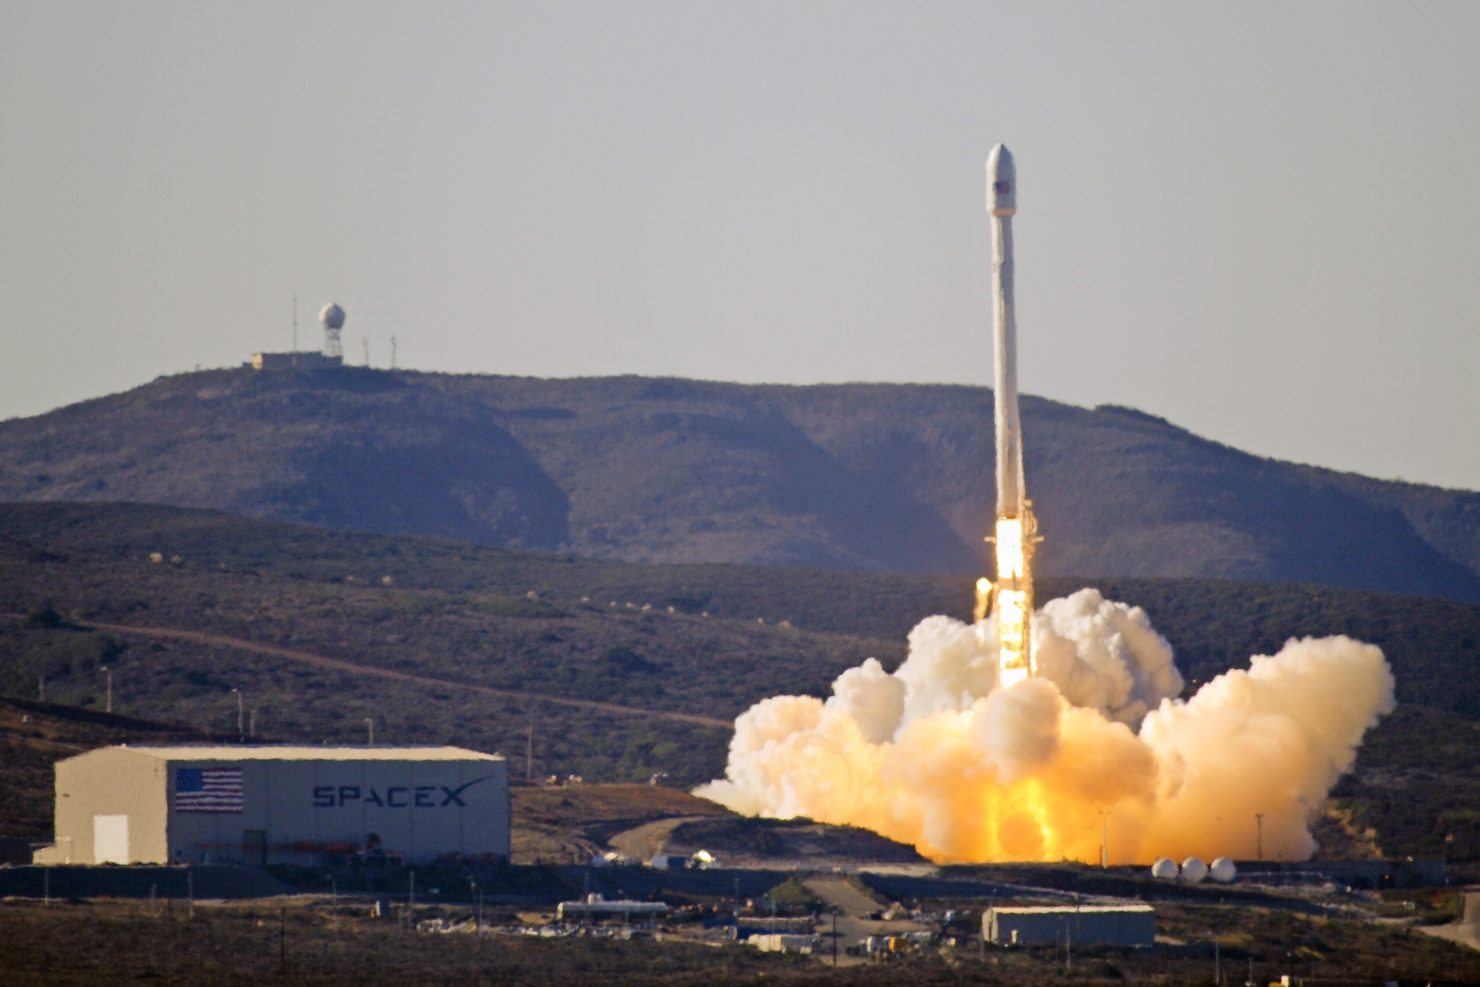 Launch_of_Falcon_9_carrying_CASSIOPE_(130929-F-ET475-012)